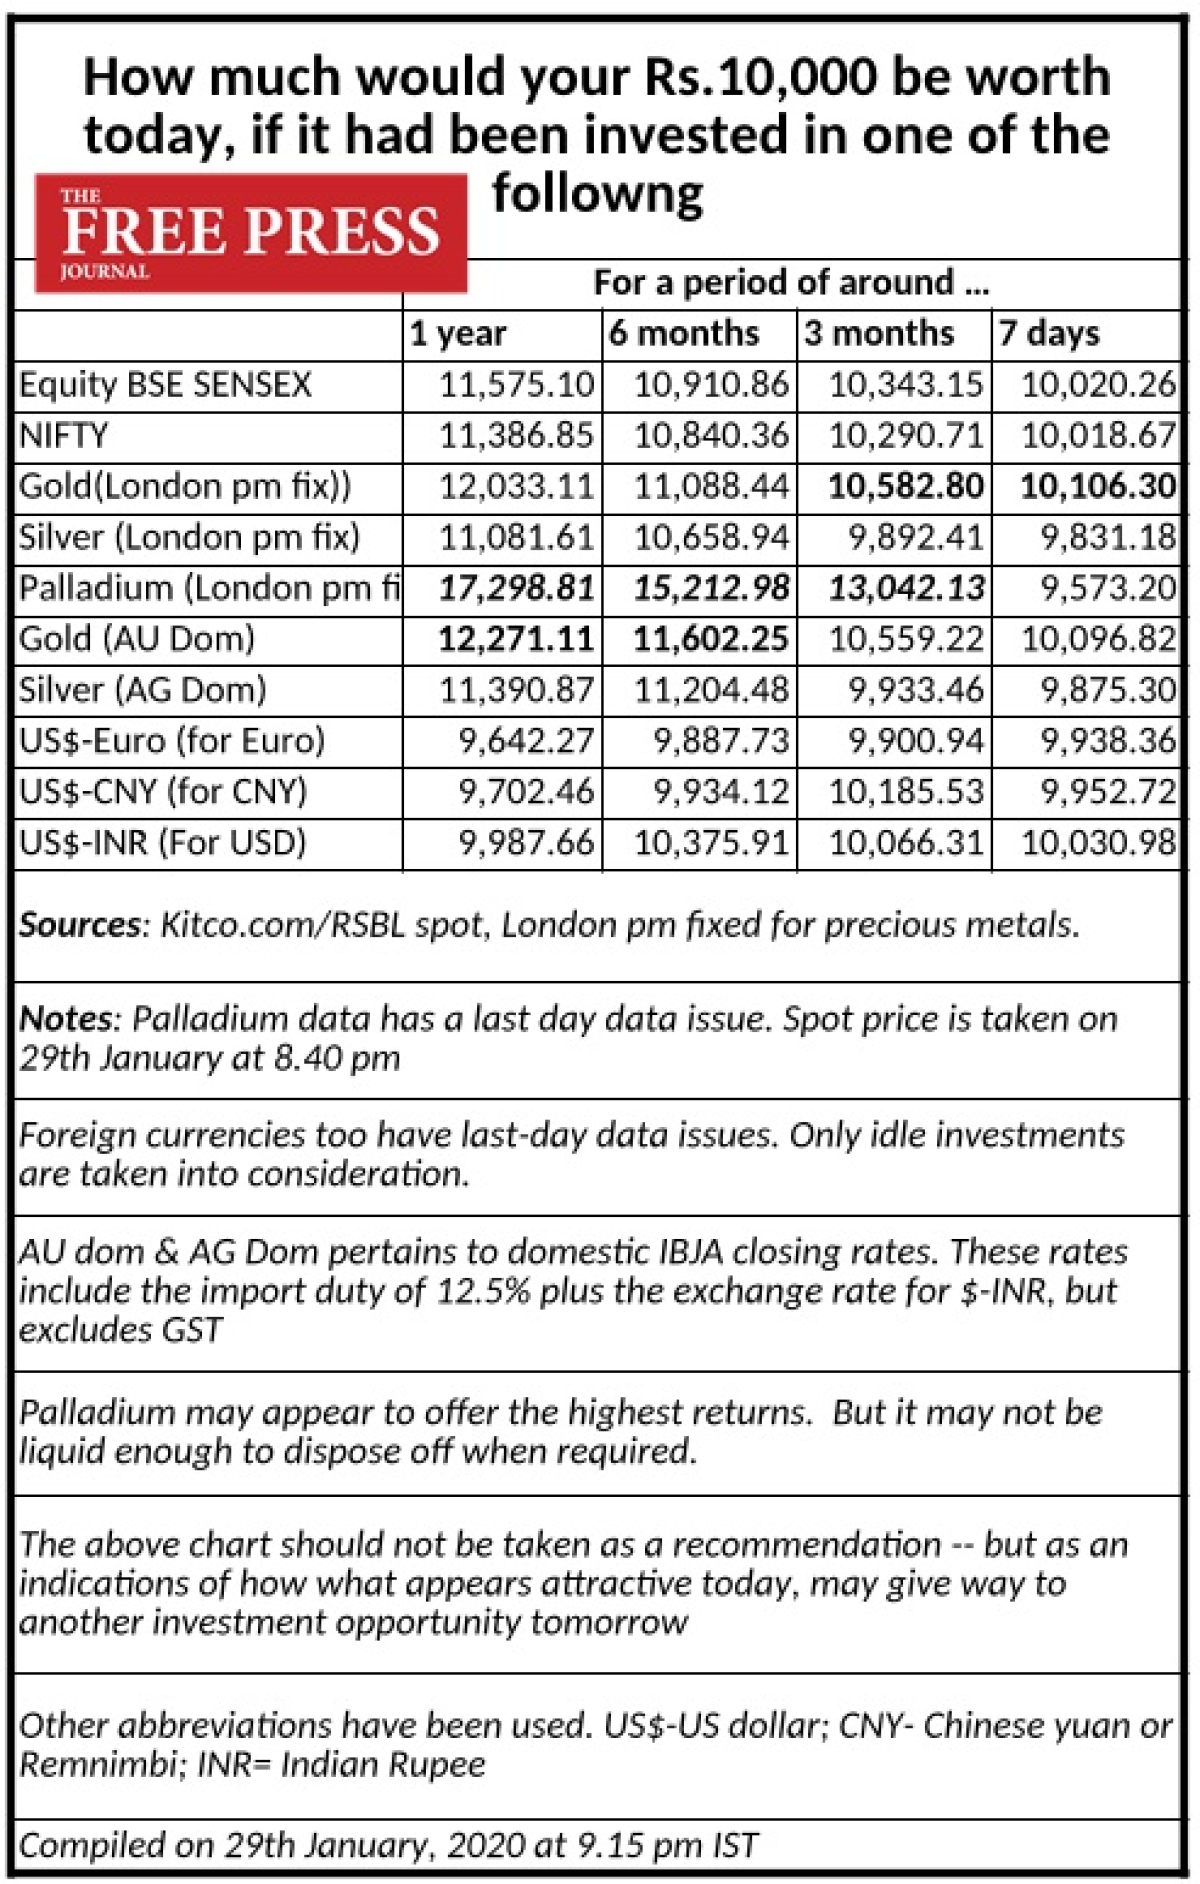 How much would your Rs 10,000 be worth on Jan 30, 2020, if you invested a year ago in stock market, silver or gold?